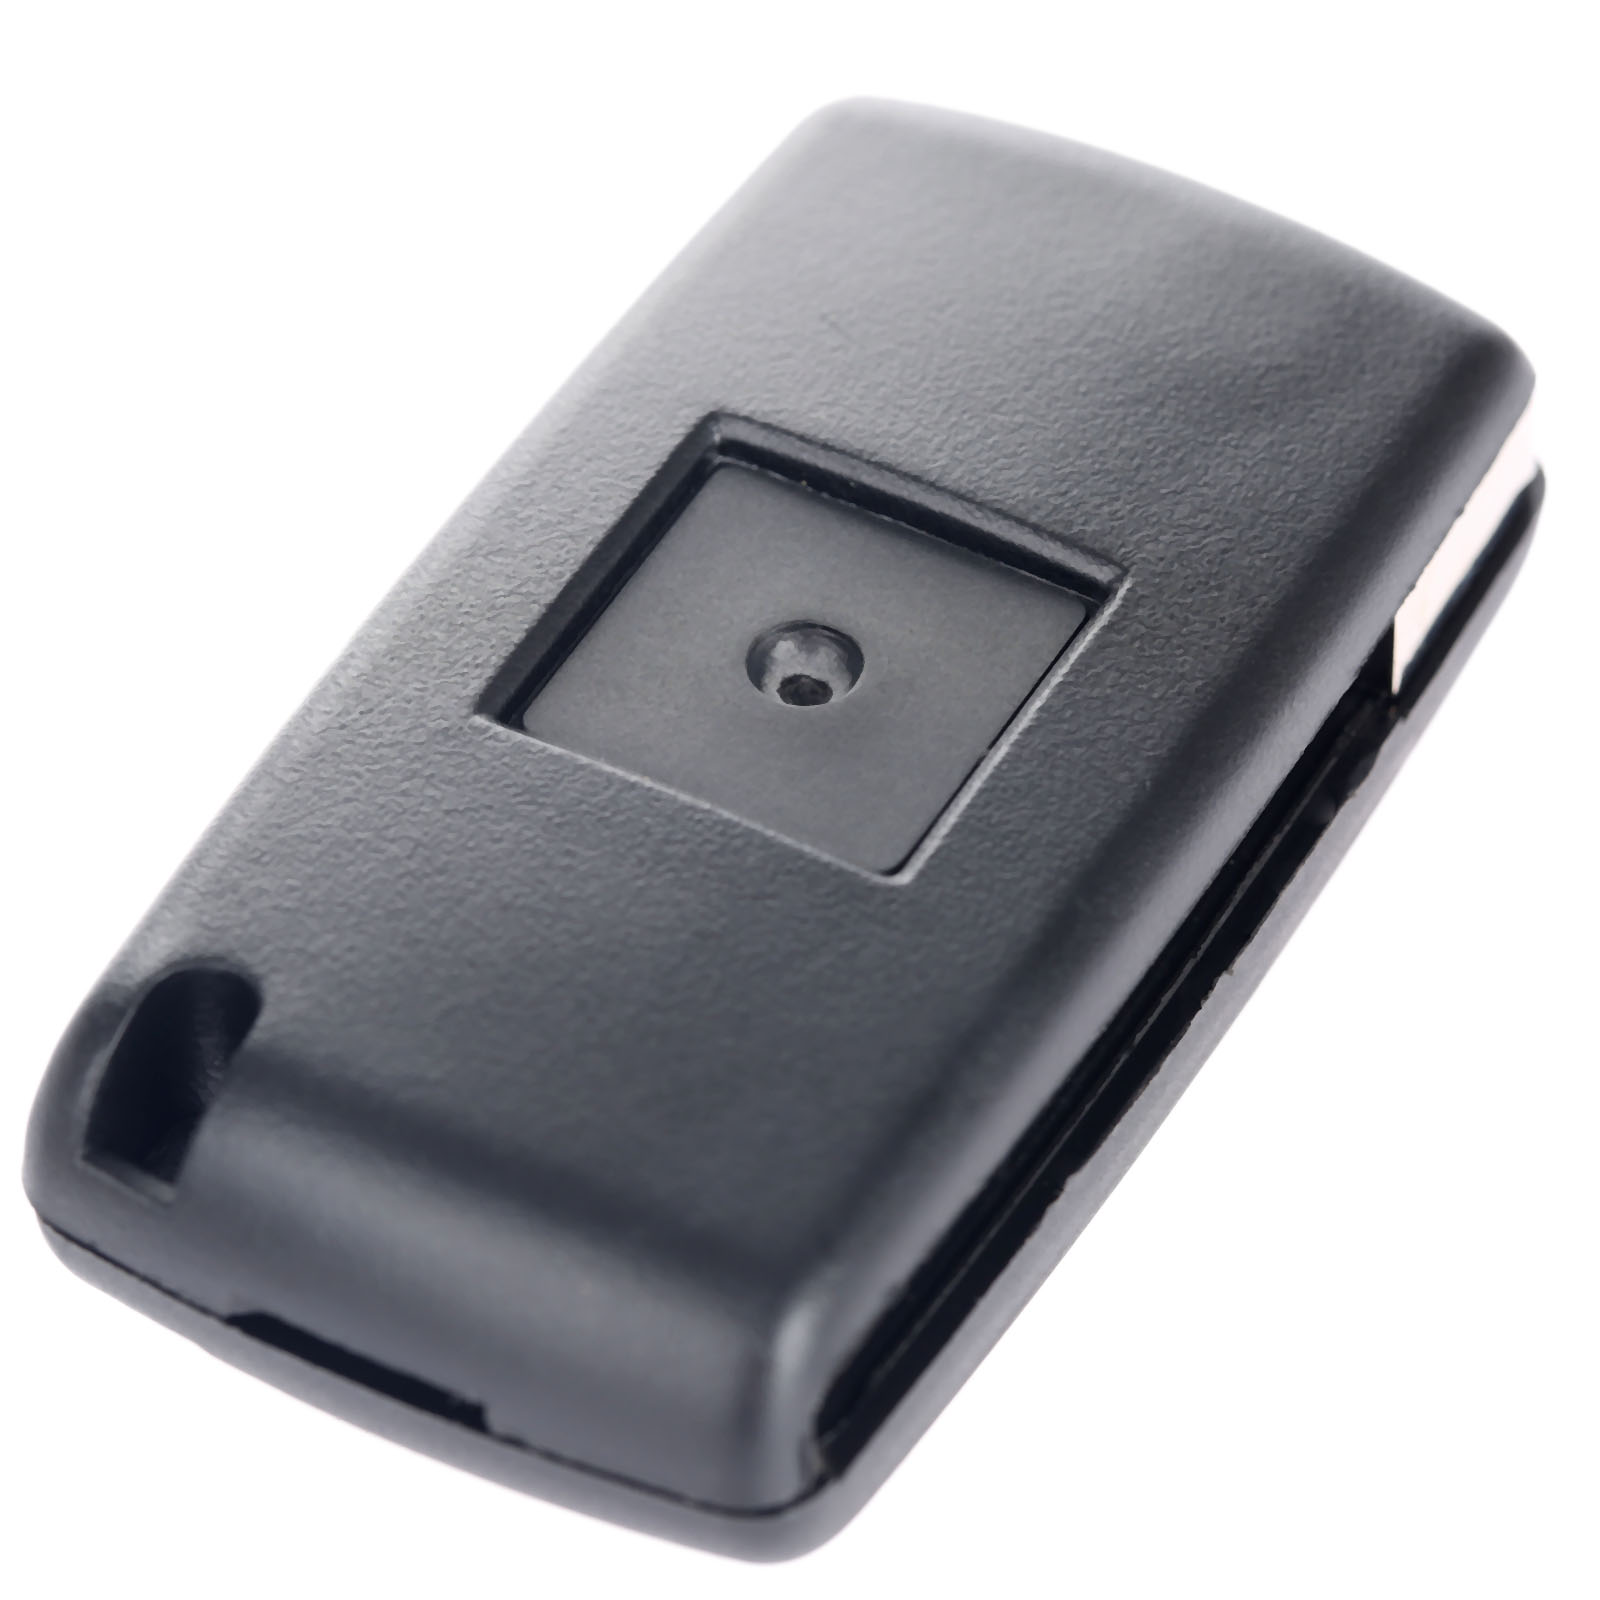 3 Buttons Auto Flip Folding Remote Entry Key Shell Case For 207 307 308 407 607 Replacement Car Key Fob Cover in Car Key from Automobiles Motorcycles